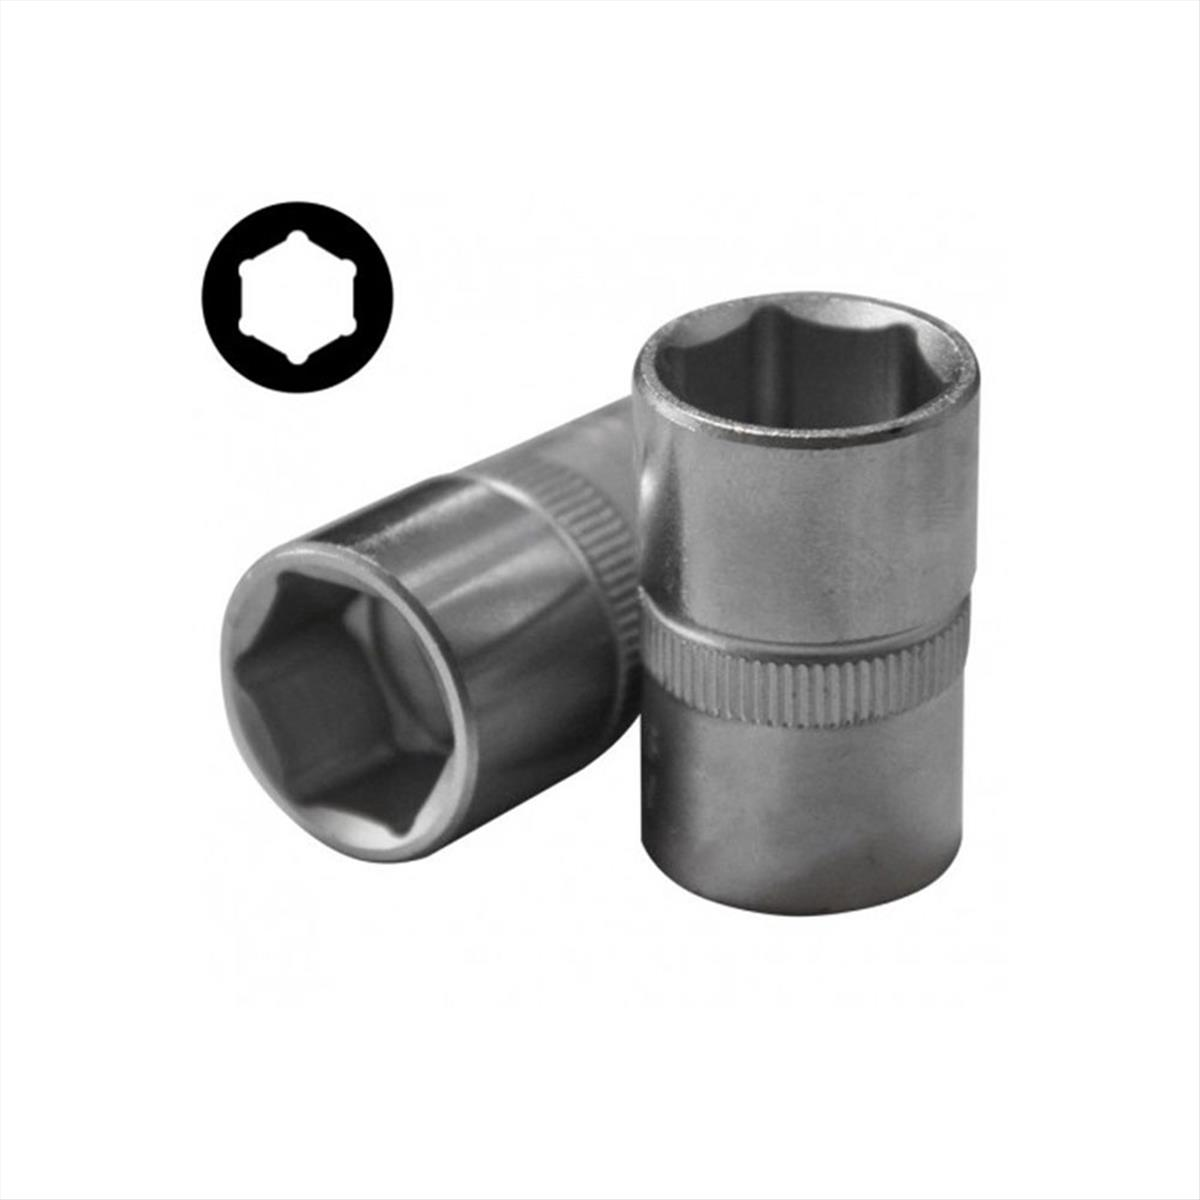 force-53513-3-8-6pt-flank-socket-13.jpg